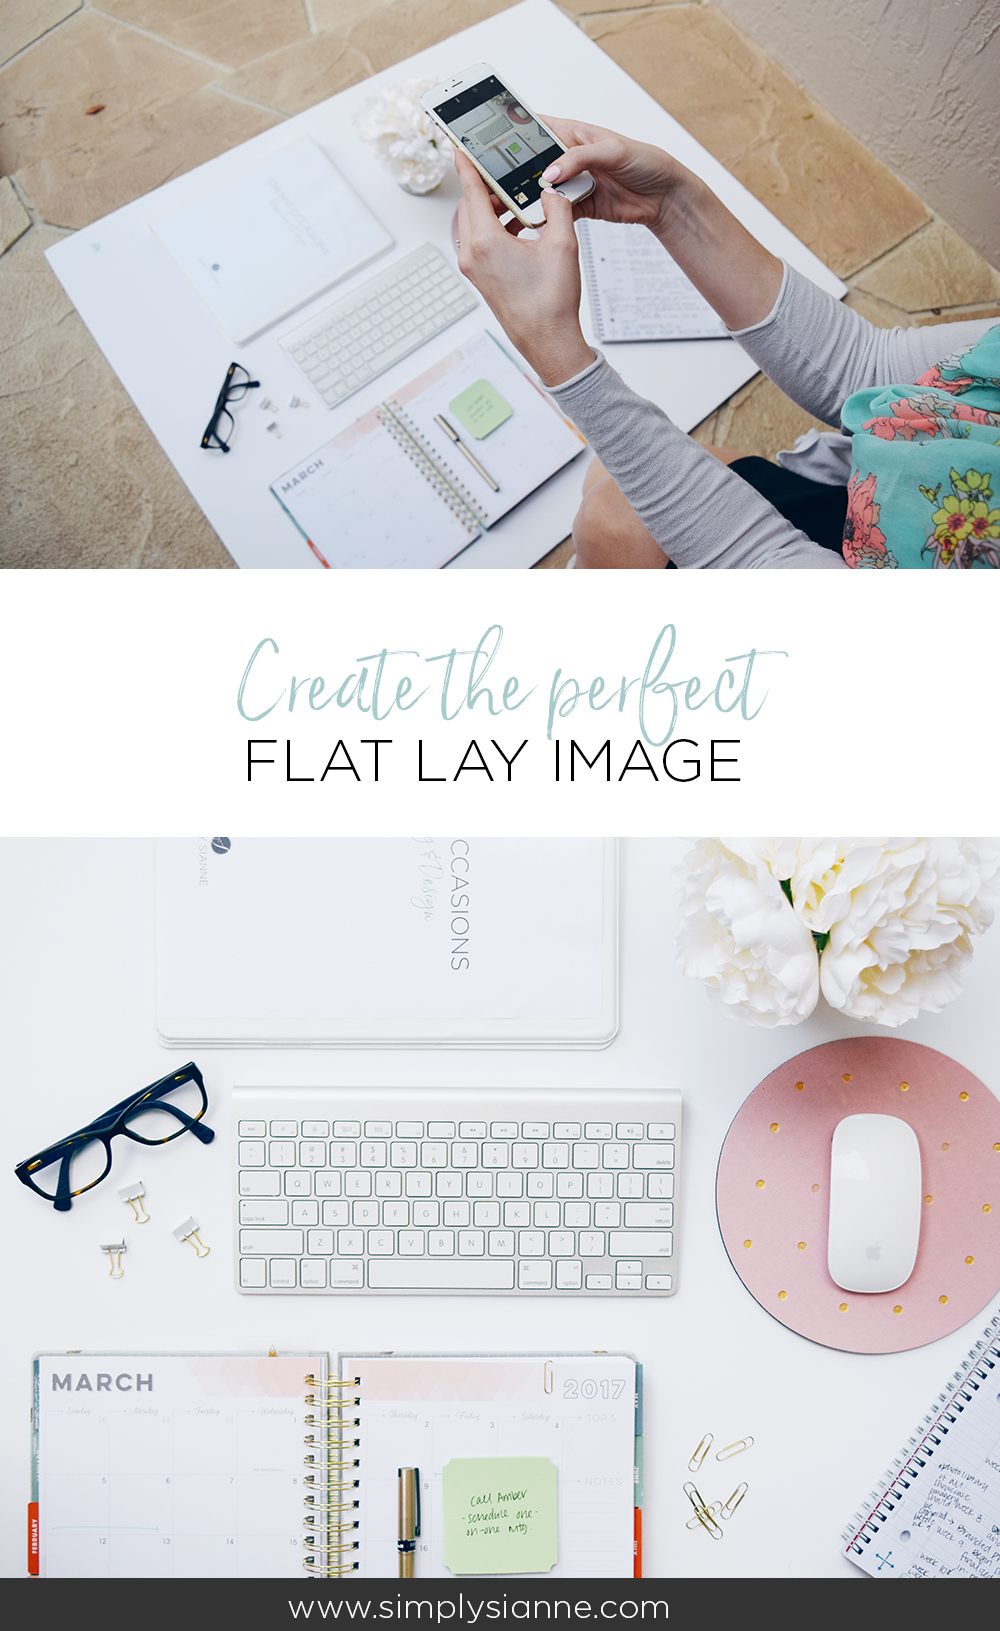 How to create the perfect flat lay image with 4 simple steps